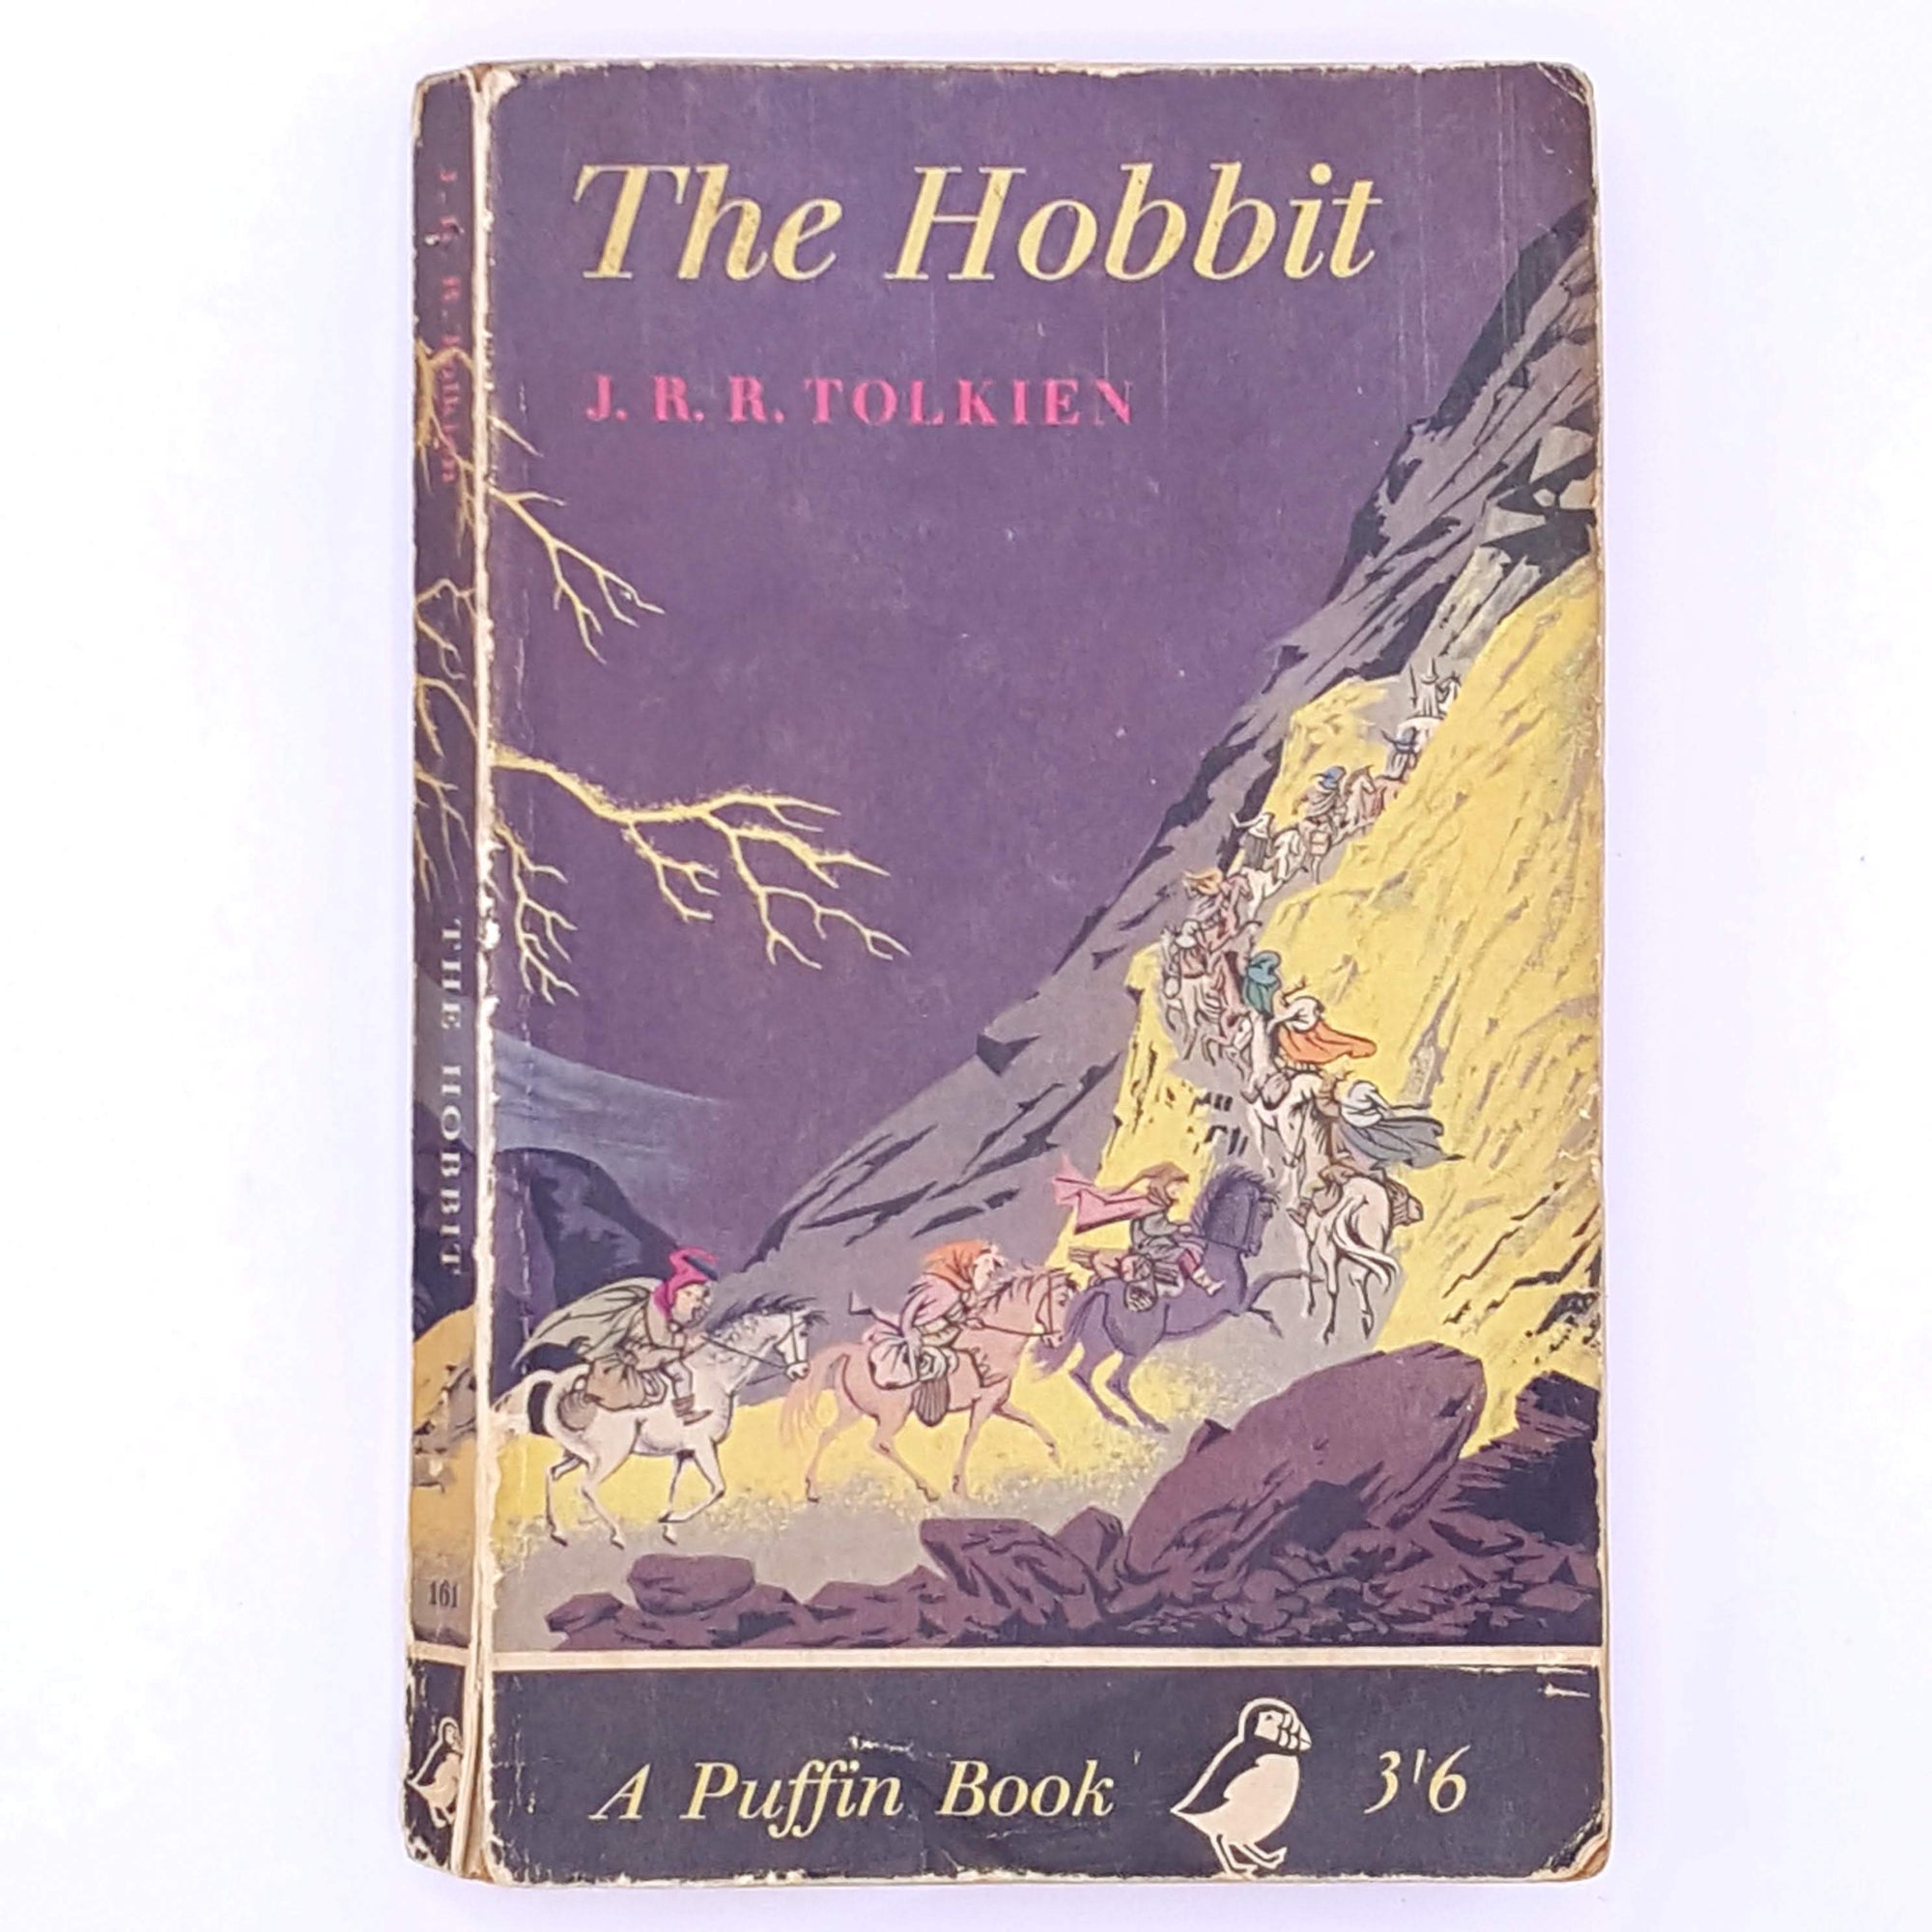 Puffin - The Hobbit